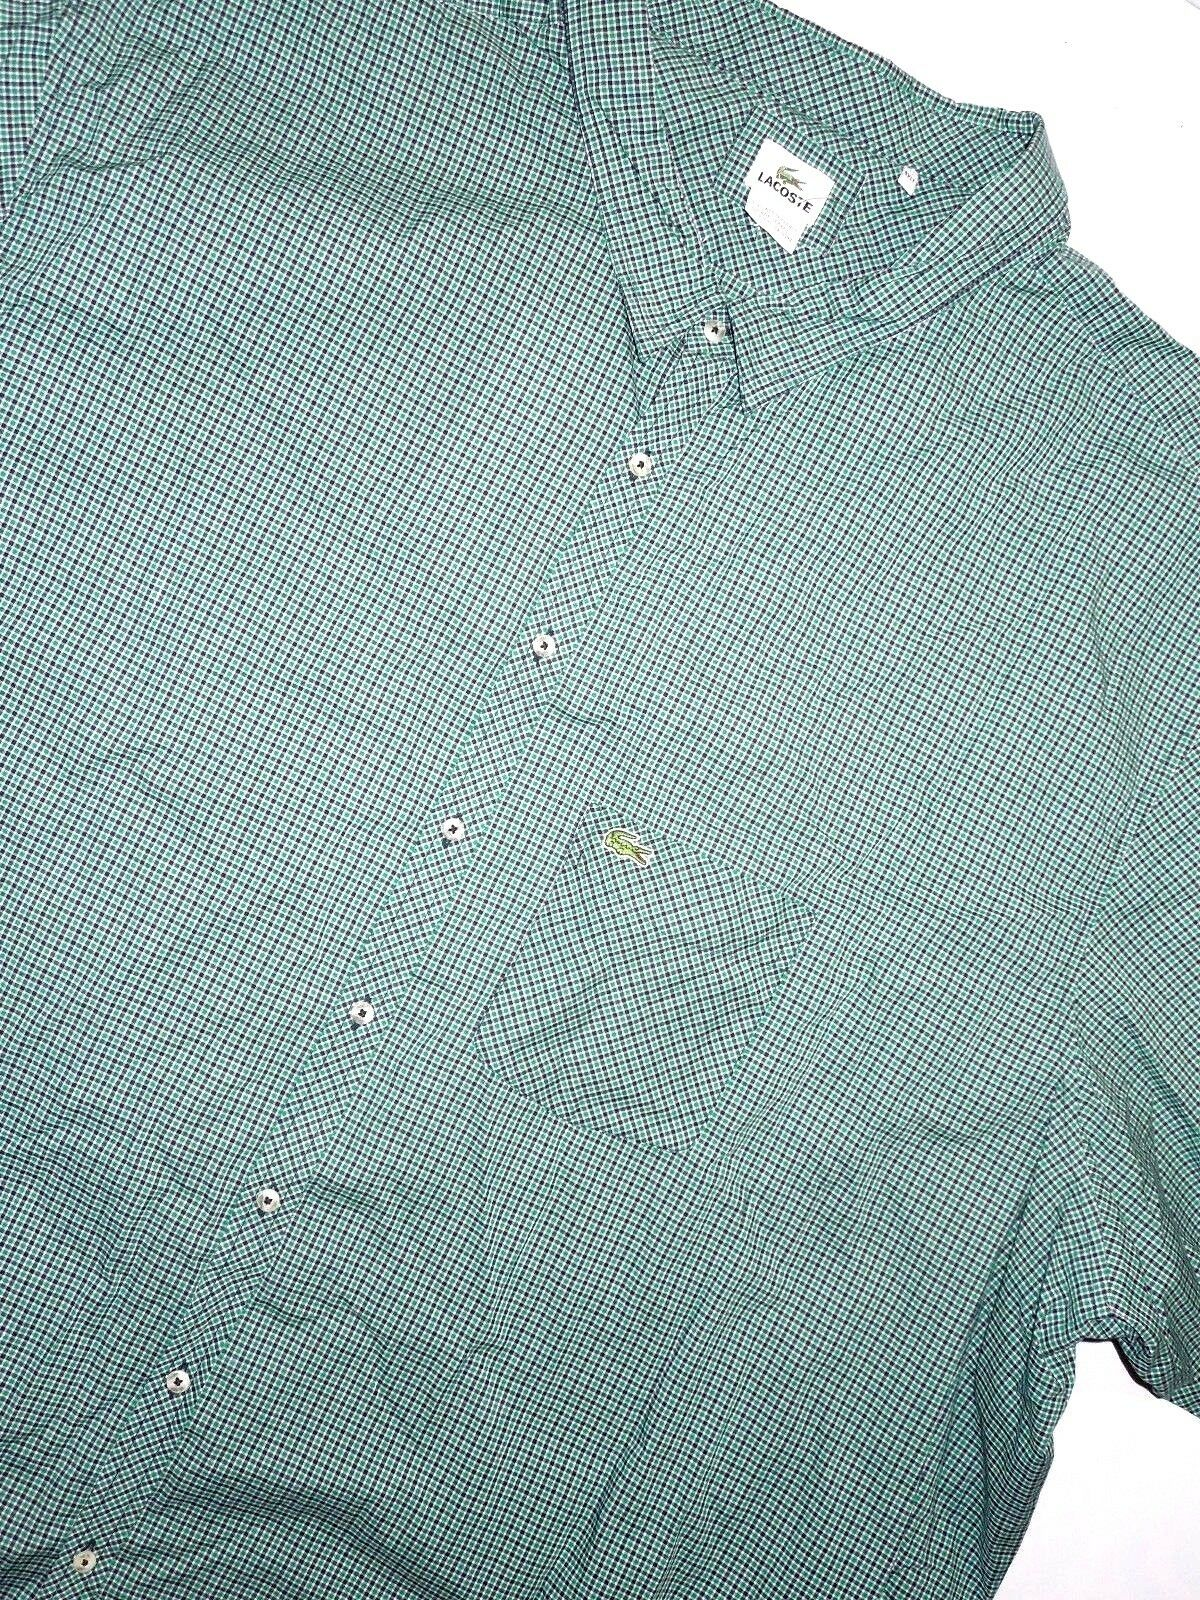 Lacoste Mens Green Plaid Long Sleeve Shirt Size 6xlt 6xl Tall Ebay